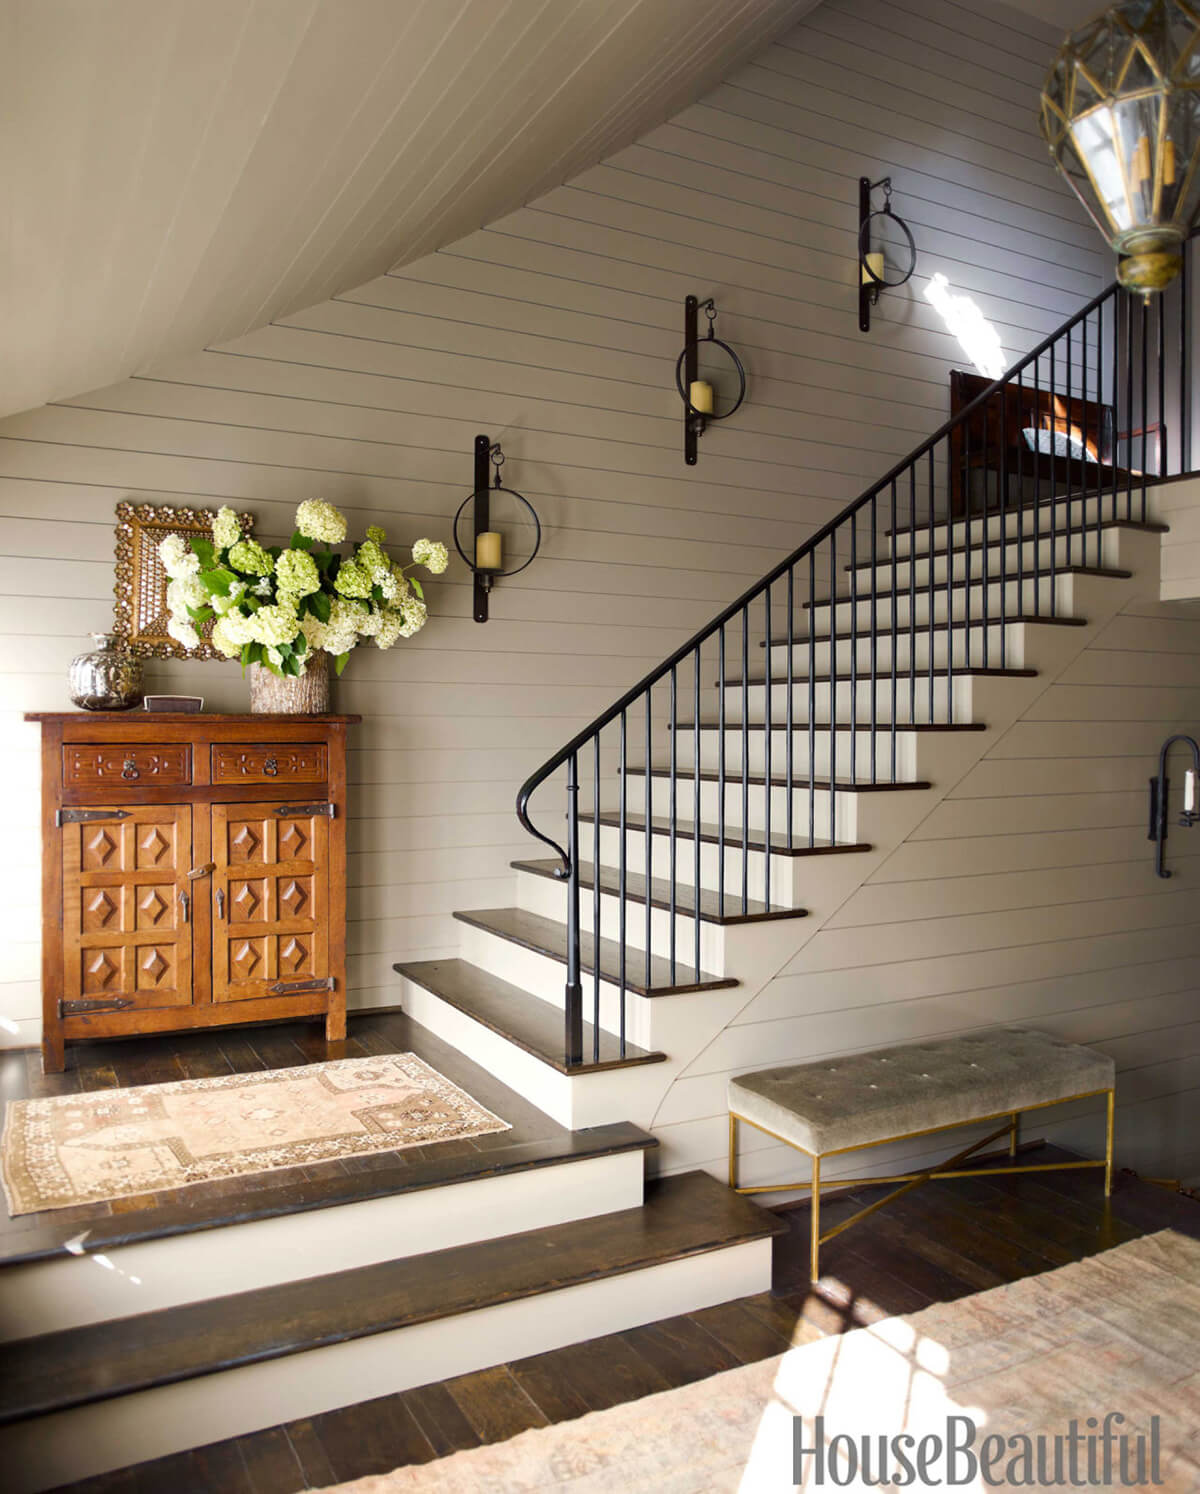 Home Gallery Design Ideas: 28 Best Stairway Decorating Ideas And Designs For 2019